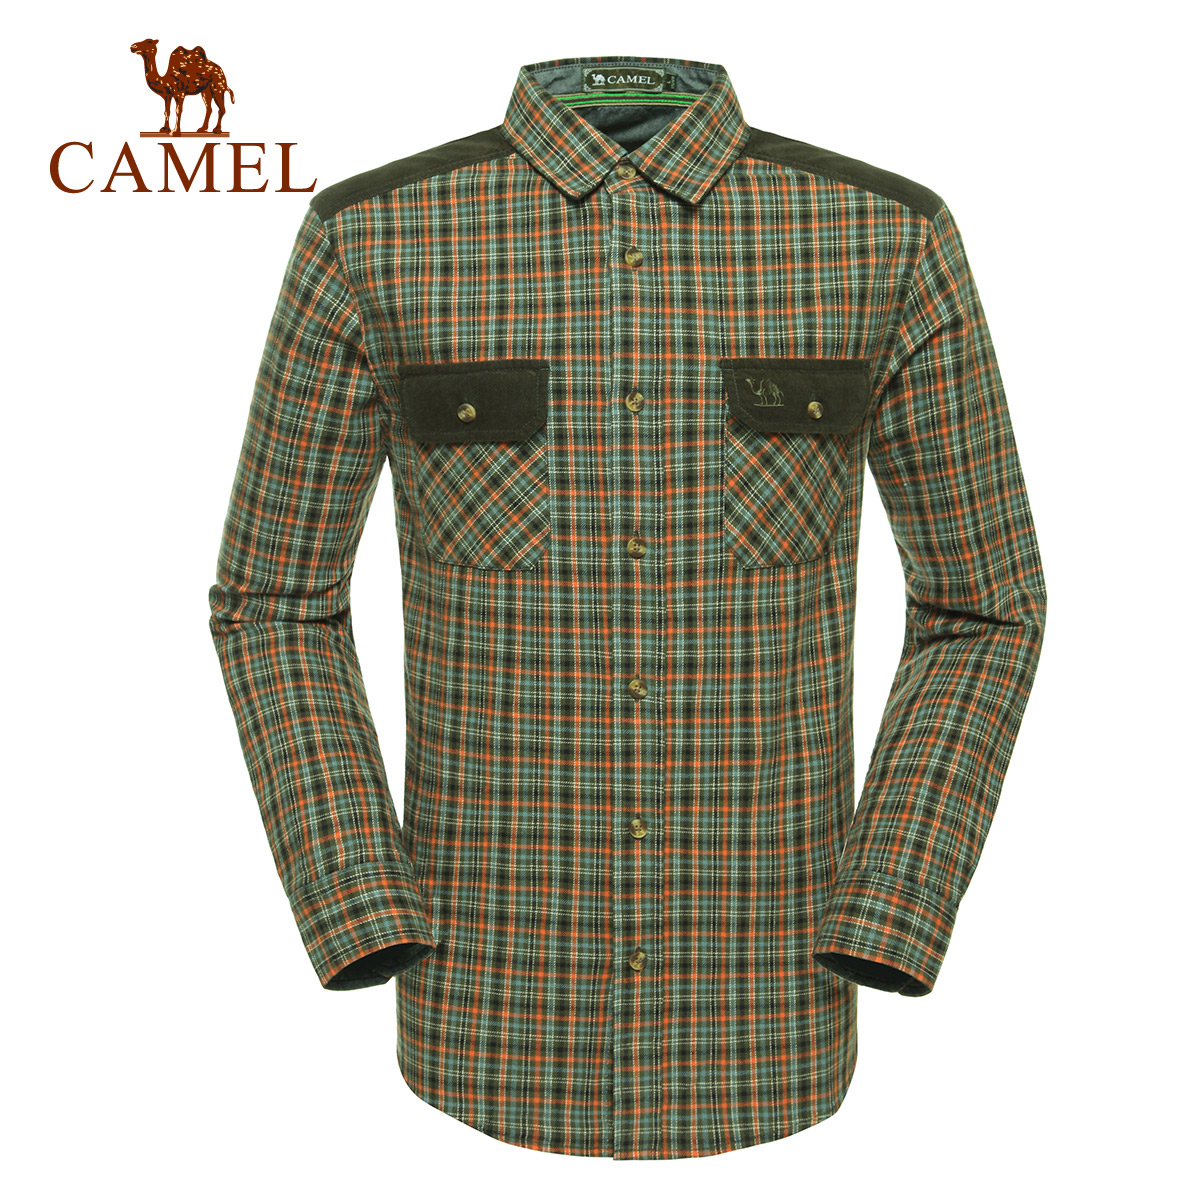 Camel camel outdoor leisure clothing men's long sleeve lapel simple casual plaid cotton shirt